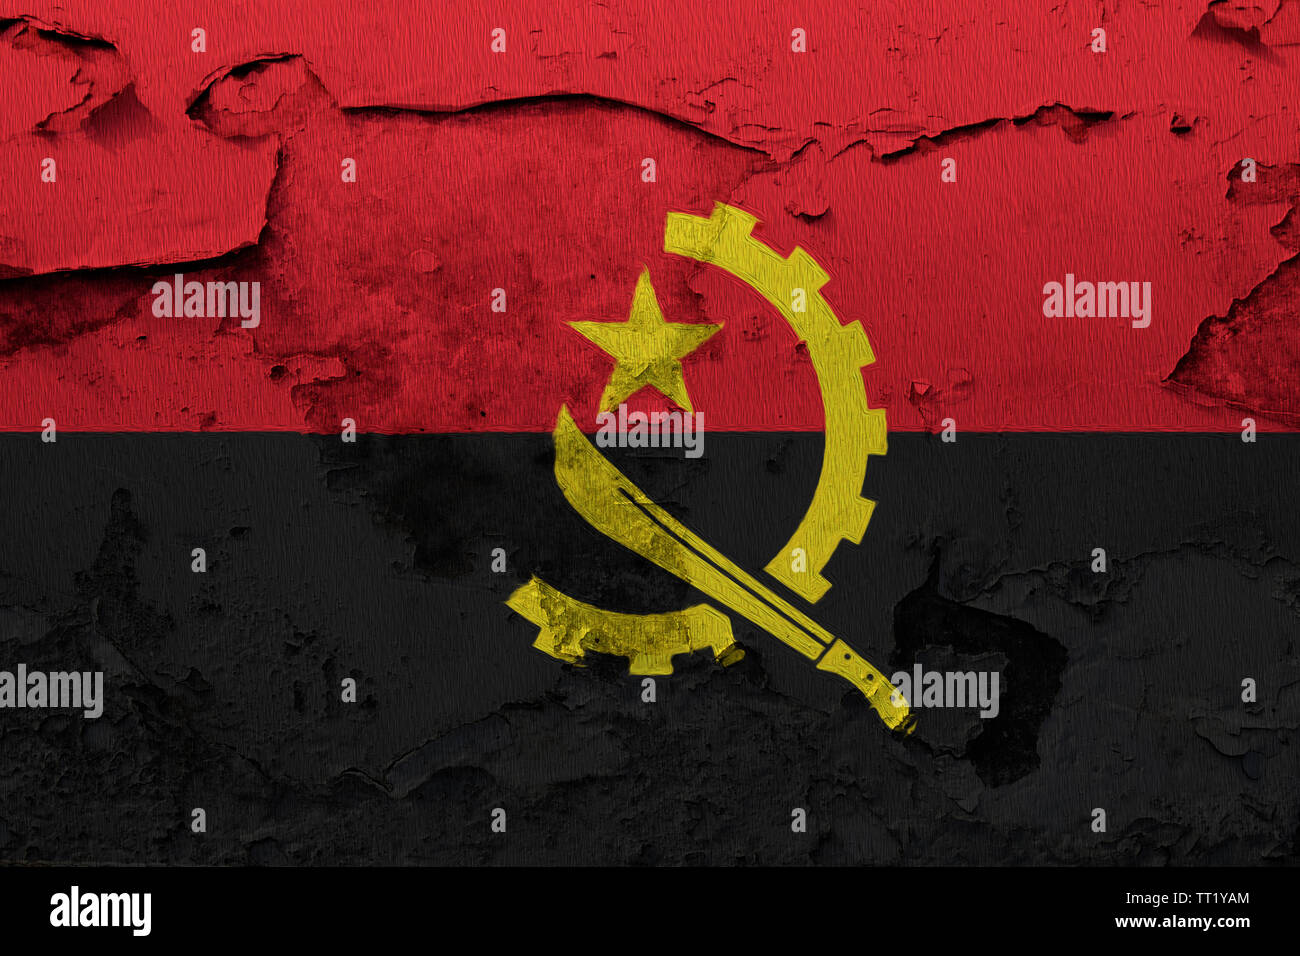 Angola flag painted on the cracked grunge concrete wall - Stock Image